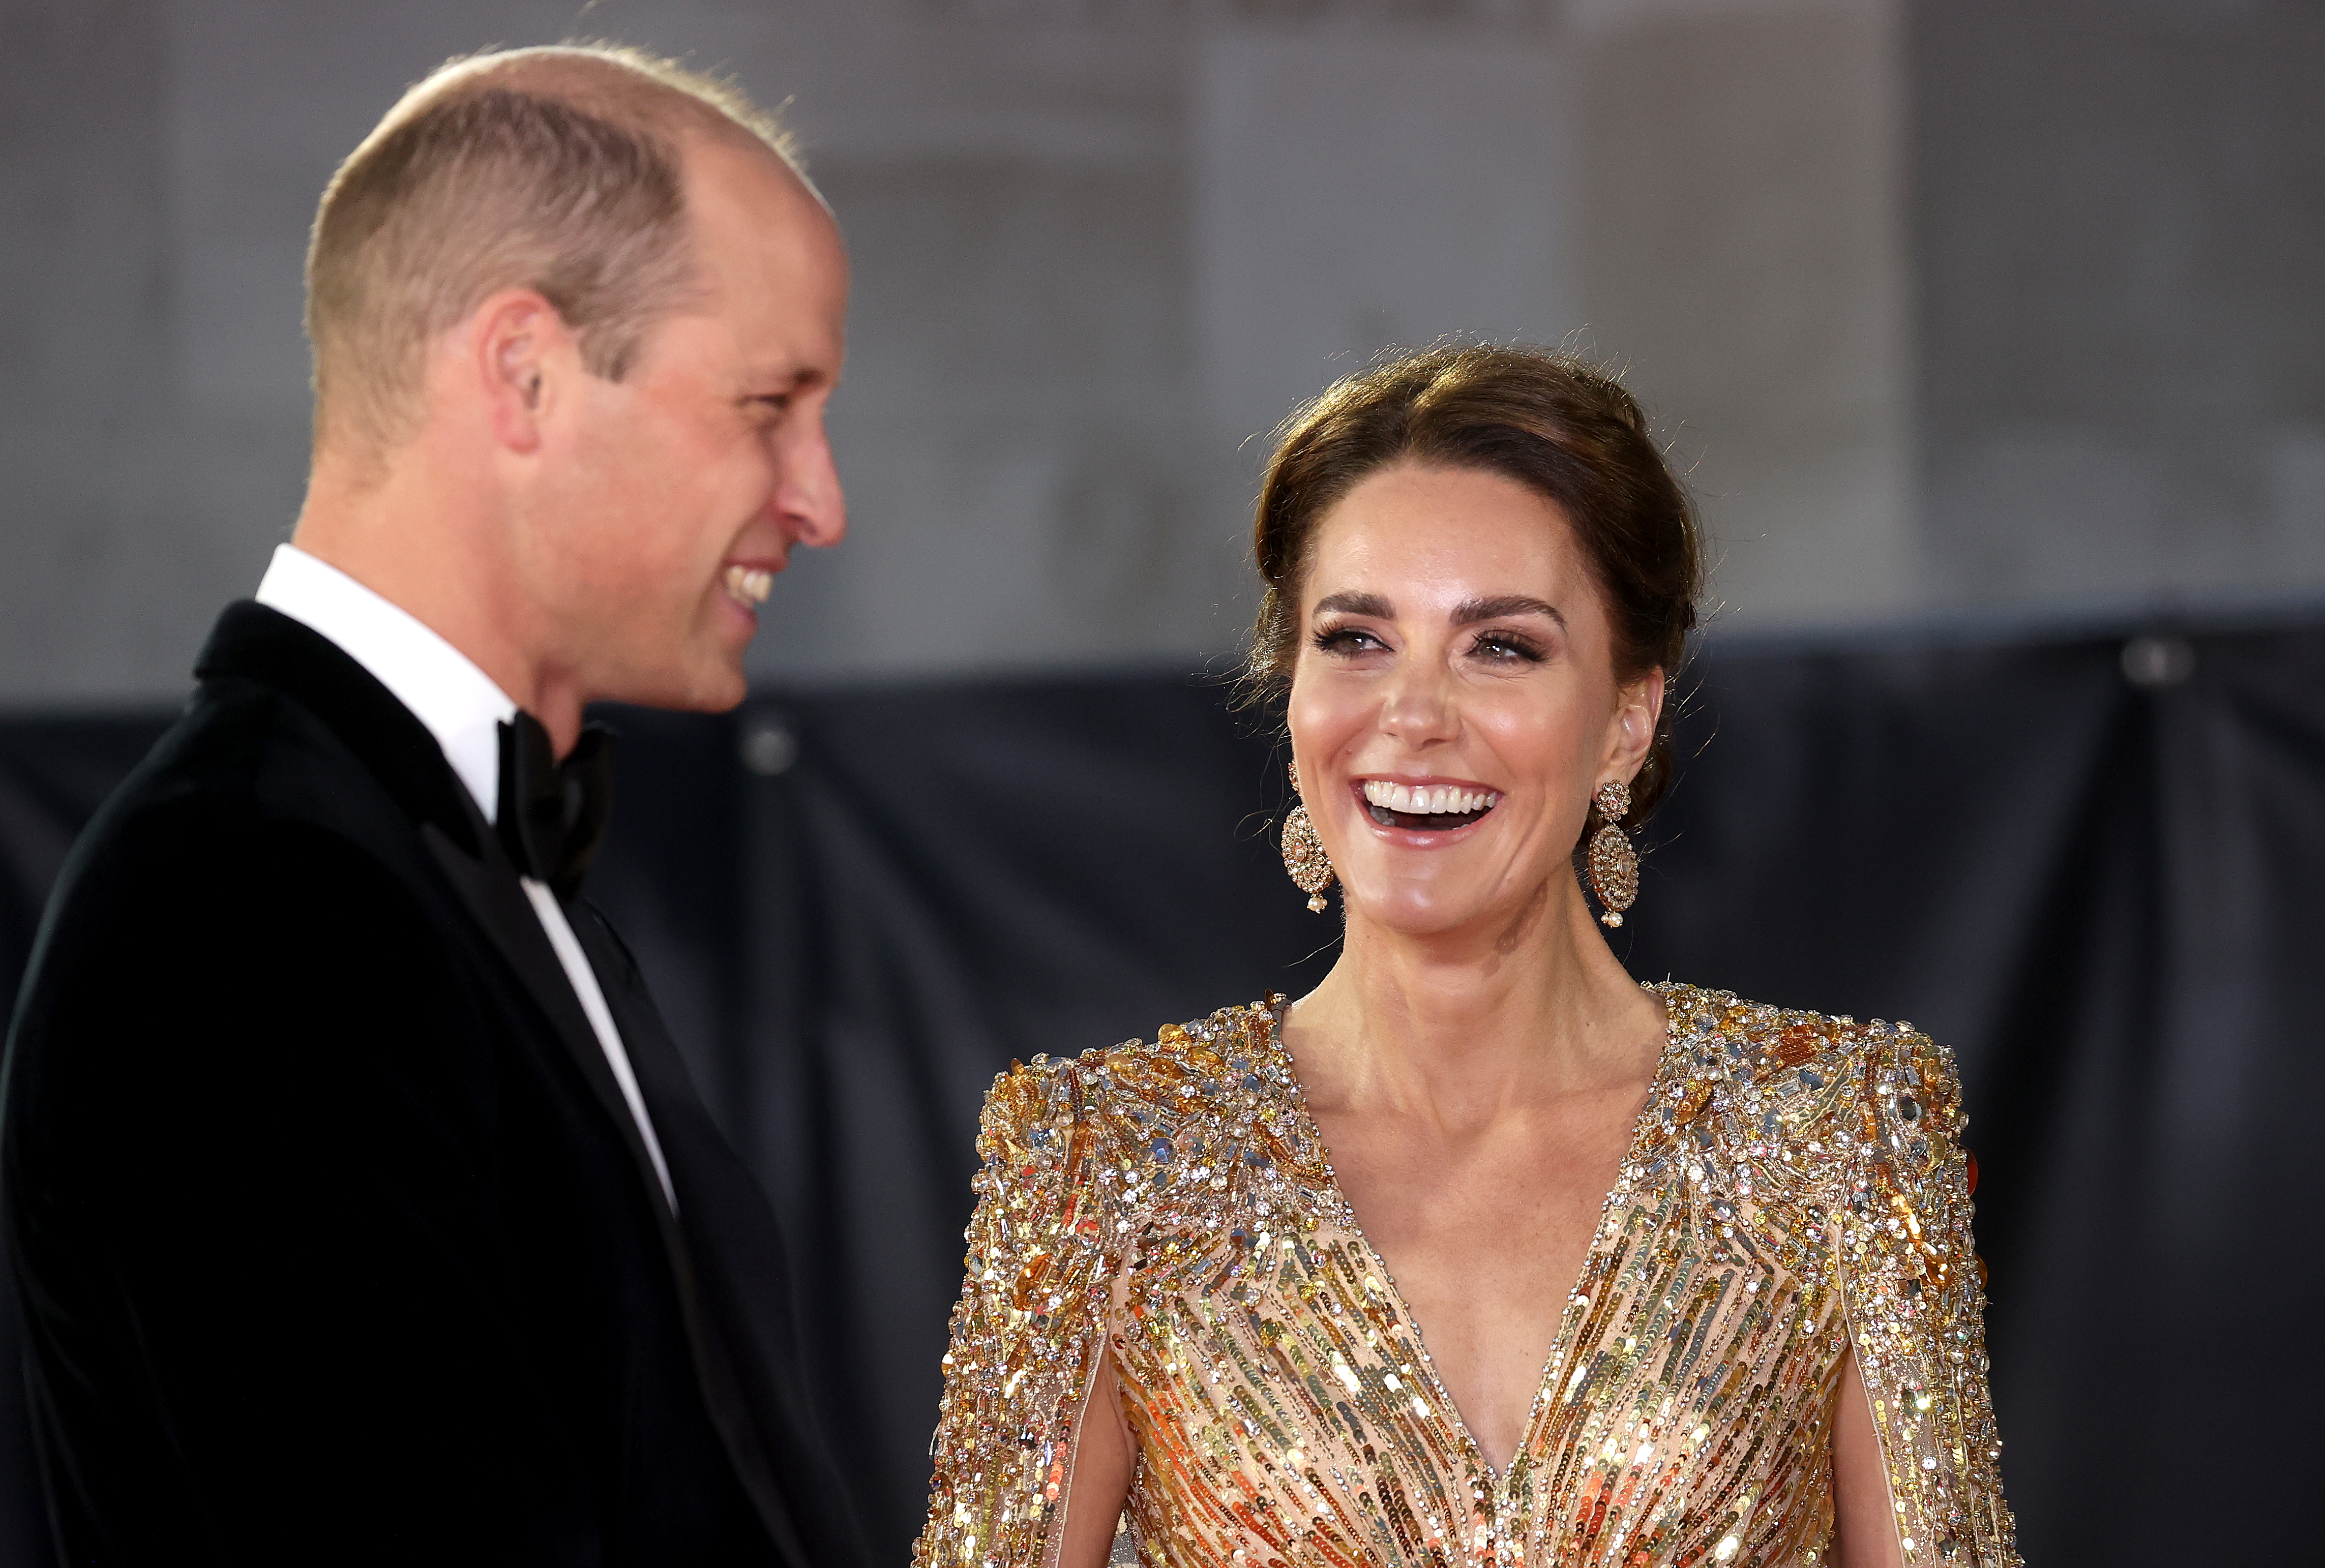 """<p>LONDON, ENGLAND - SEPTEMBER 28: Catherine, Duchess of Cambridge attends the """"No Time To Die"""" World Premiere at Royal Albert Hall on September 28, 2021 in London, England. (Photo by Chris Jackson/Getty Images)</p>"""